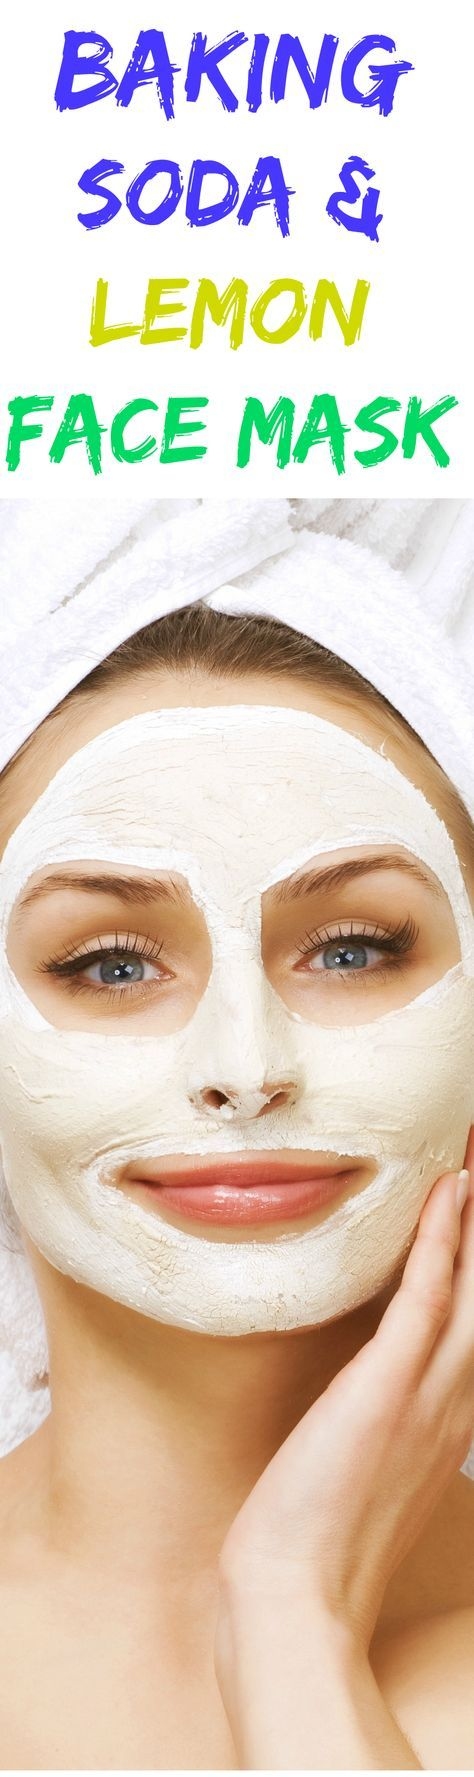 Use this baking soda & lemon face mask once a week for oily & combination skin.